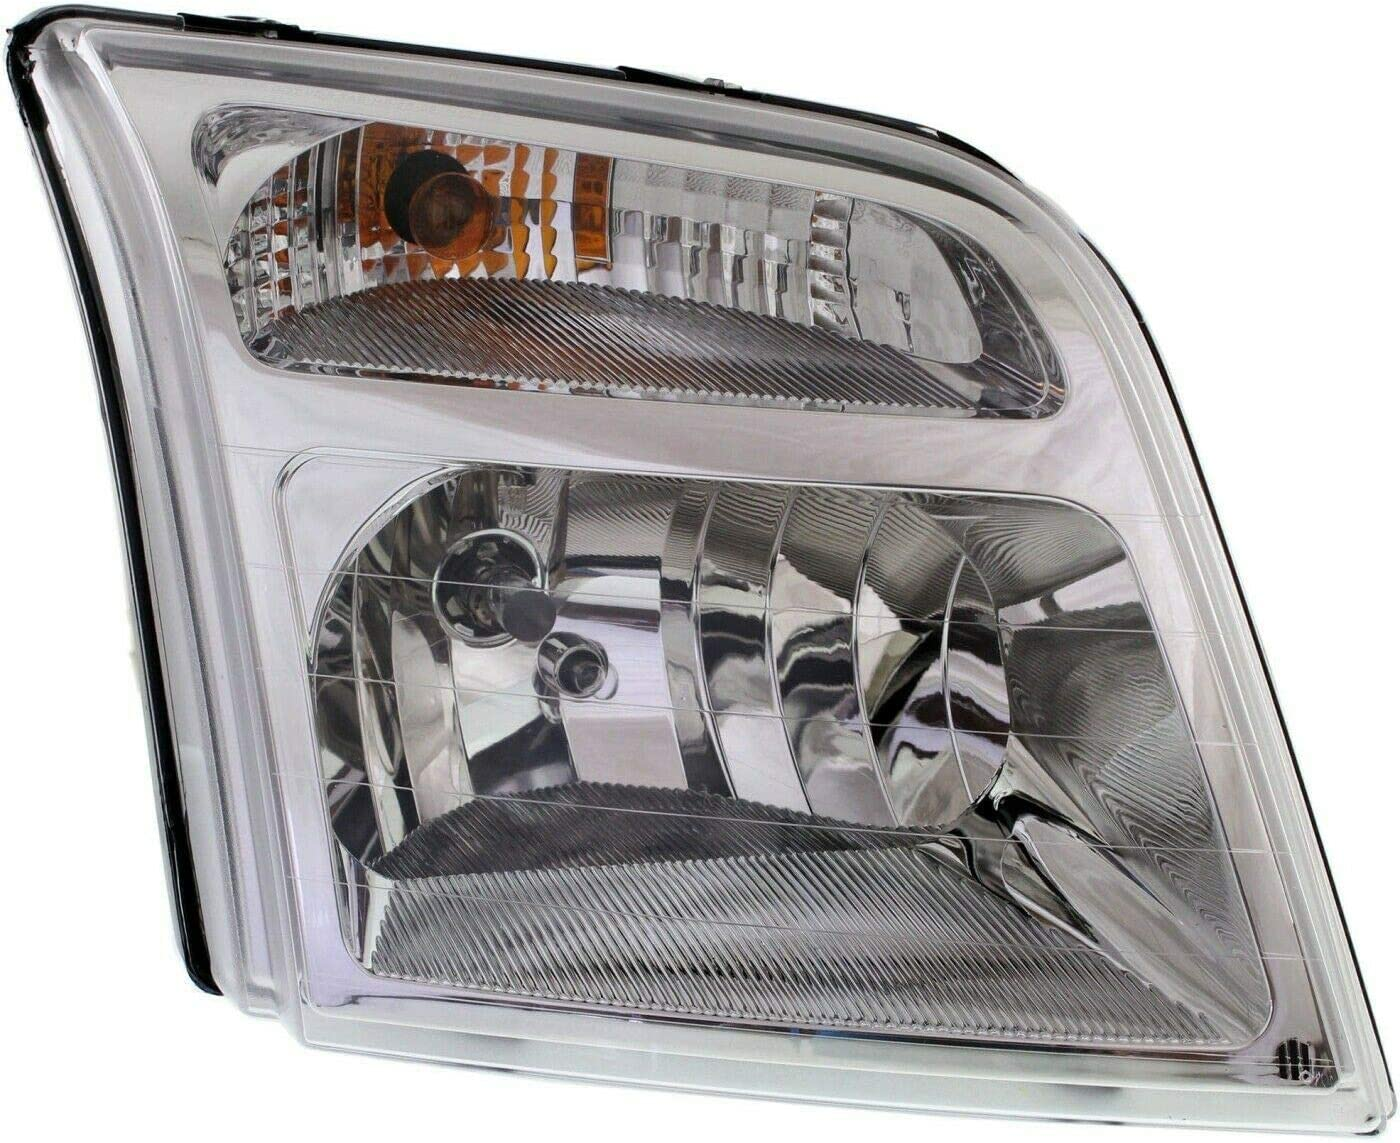 JJ Headlight Compatible with 2010-2013 XL Connect Max 60% Ranking TOP5 OFF Transit 2010-2